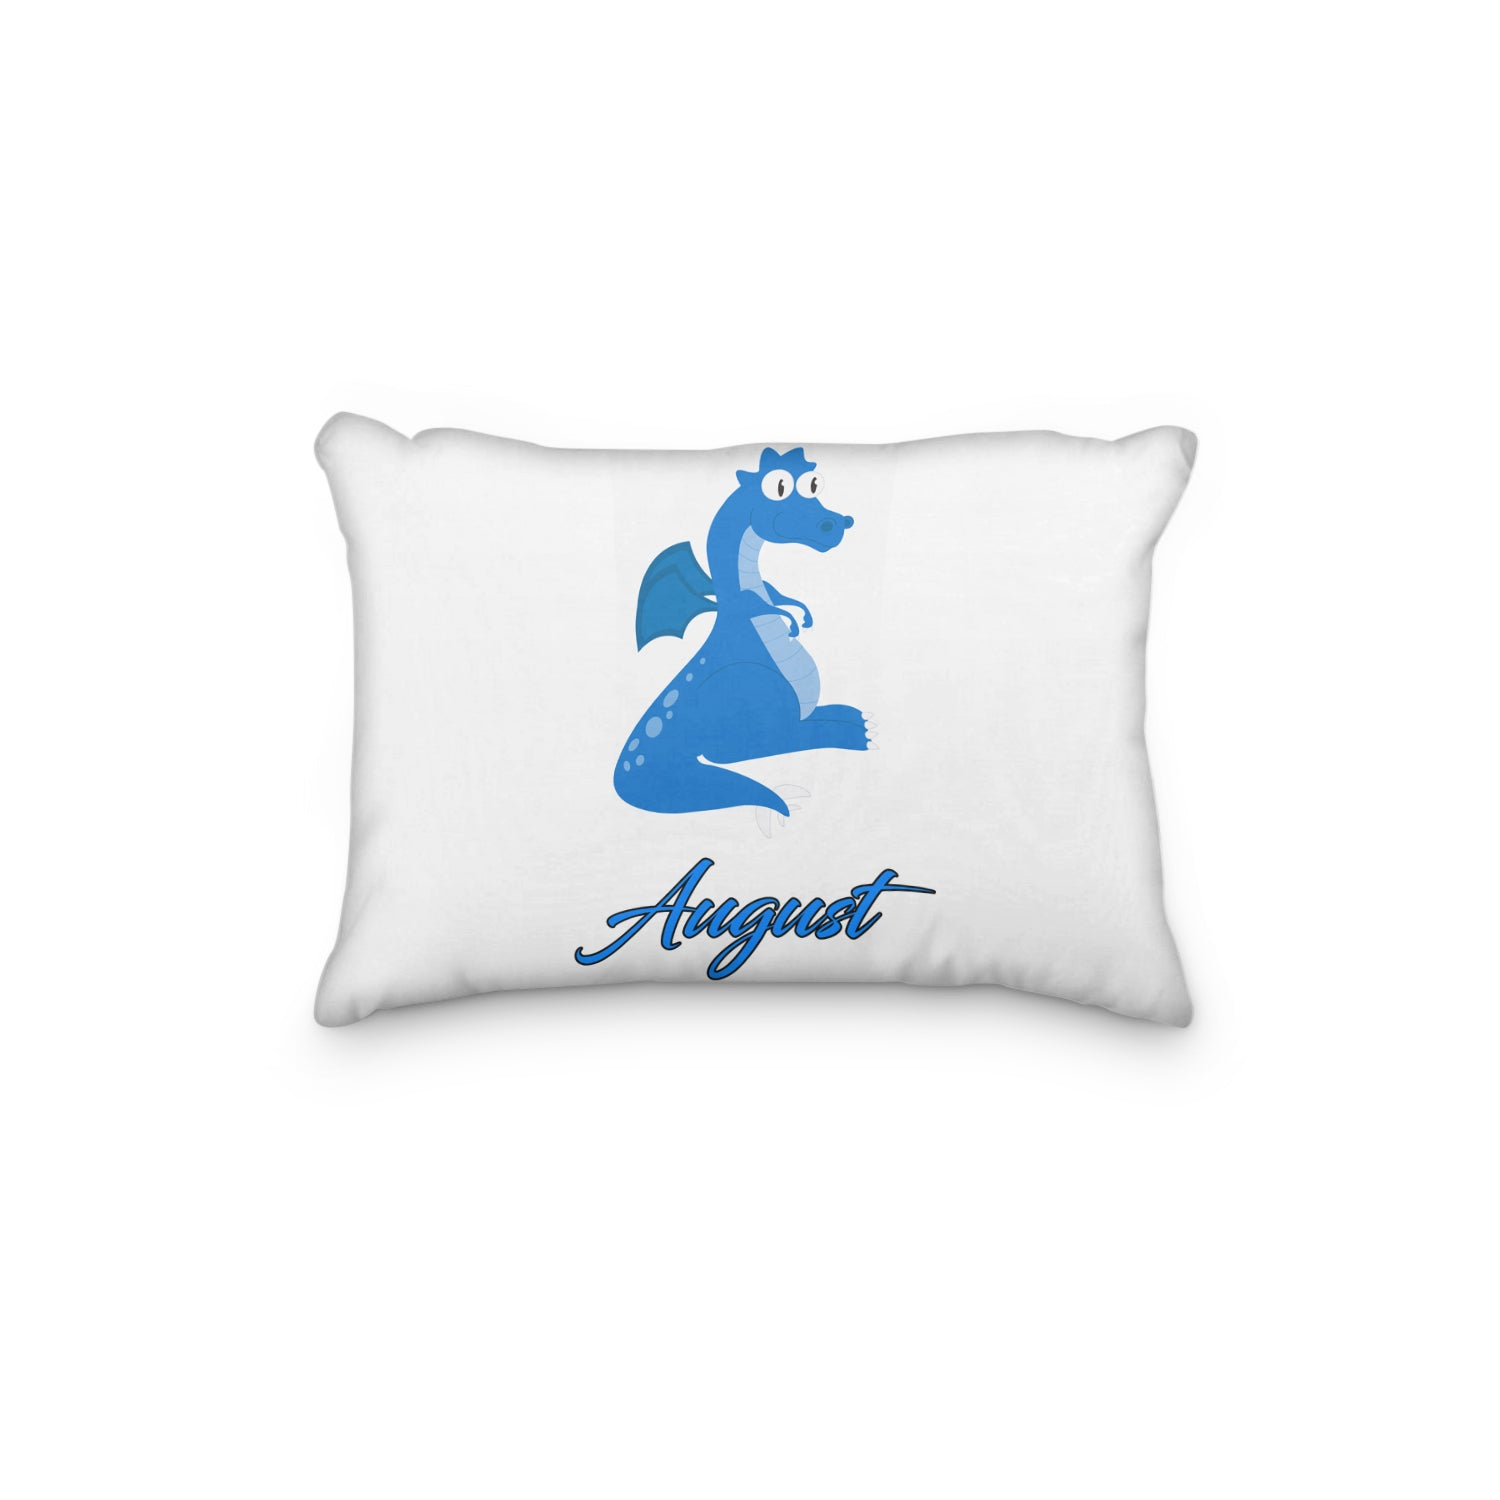 Dragon Blue Personalized Pillowcase - Incandescently